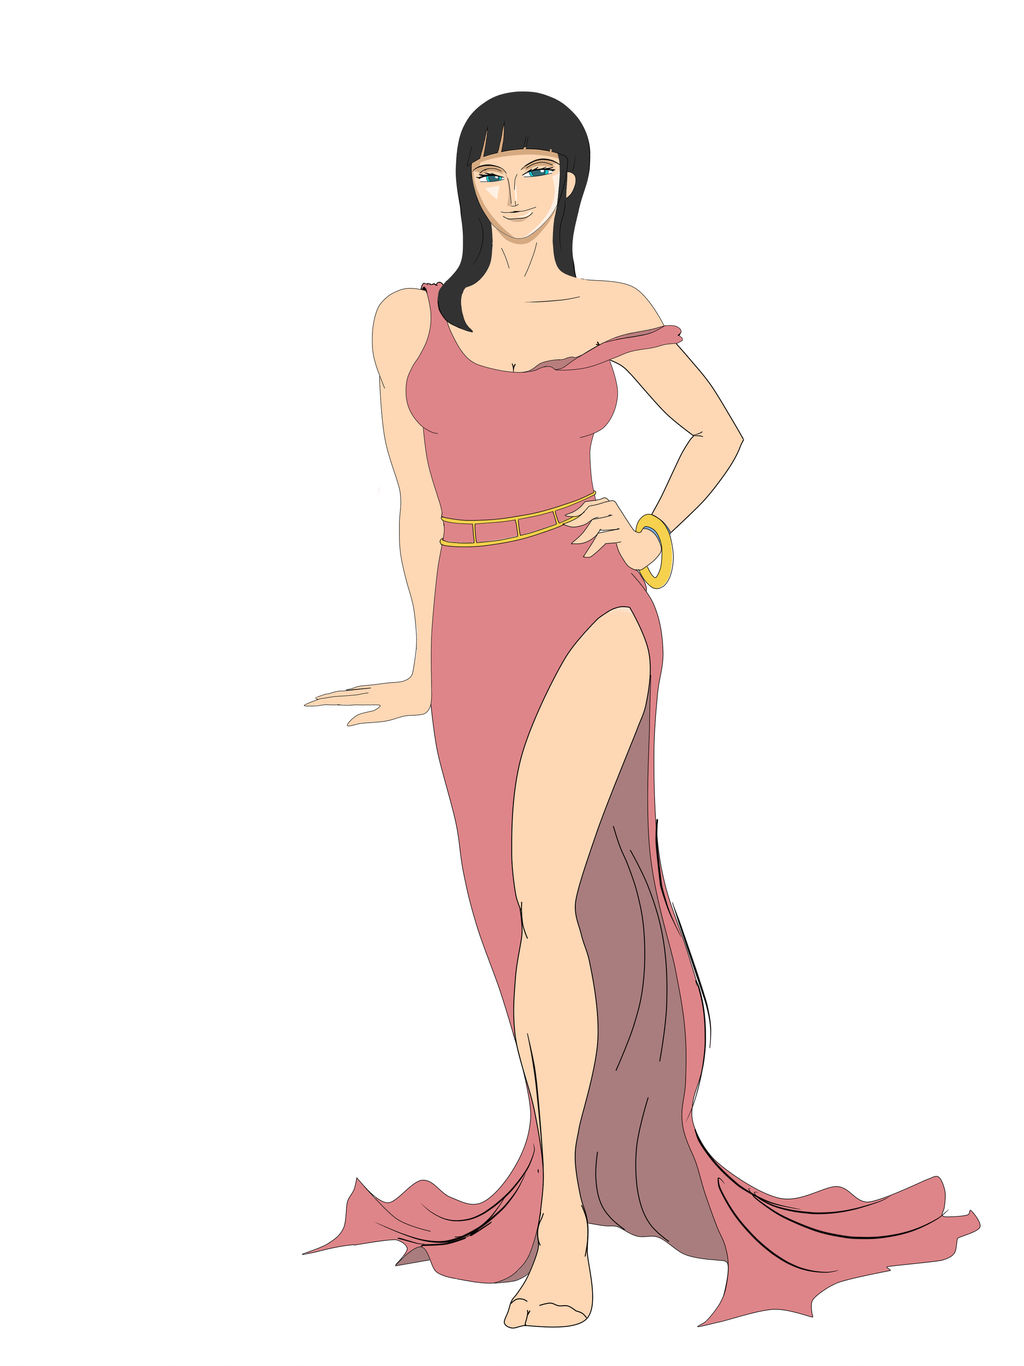 The Lovely Nico Robin part iv b by geneforson